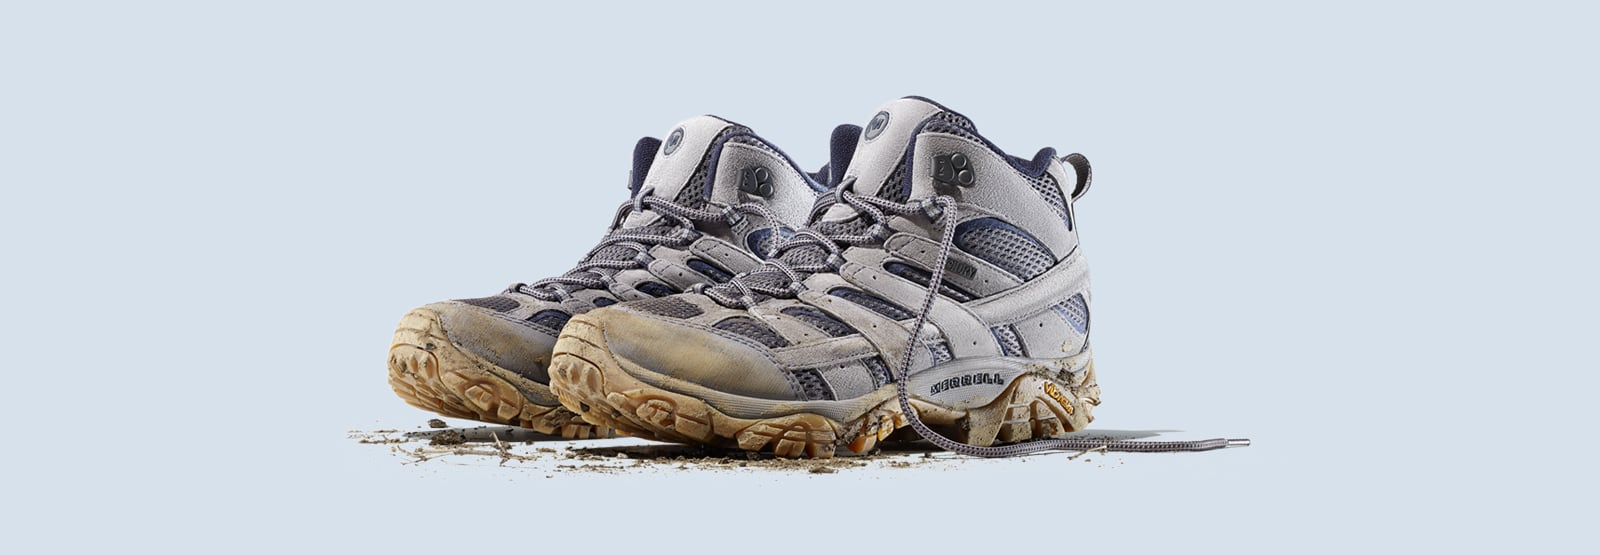 A pair of Grey and blue Merrell Moab boots, dirty and just off the hiking trail.